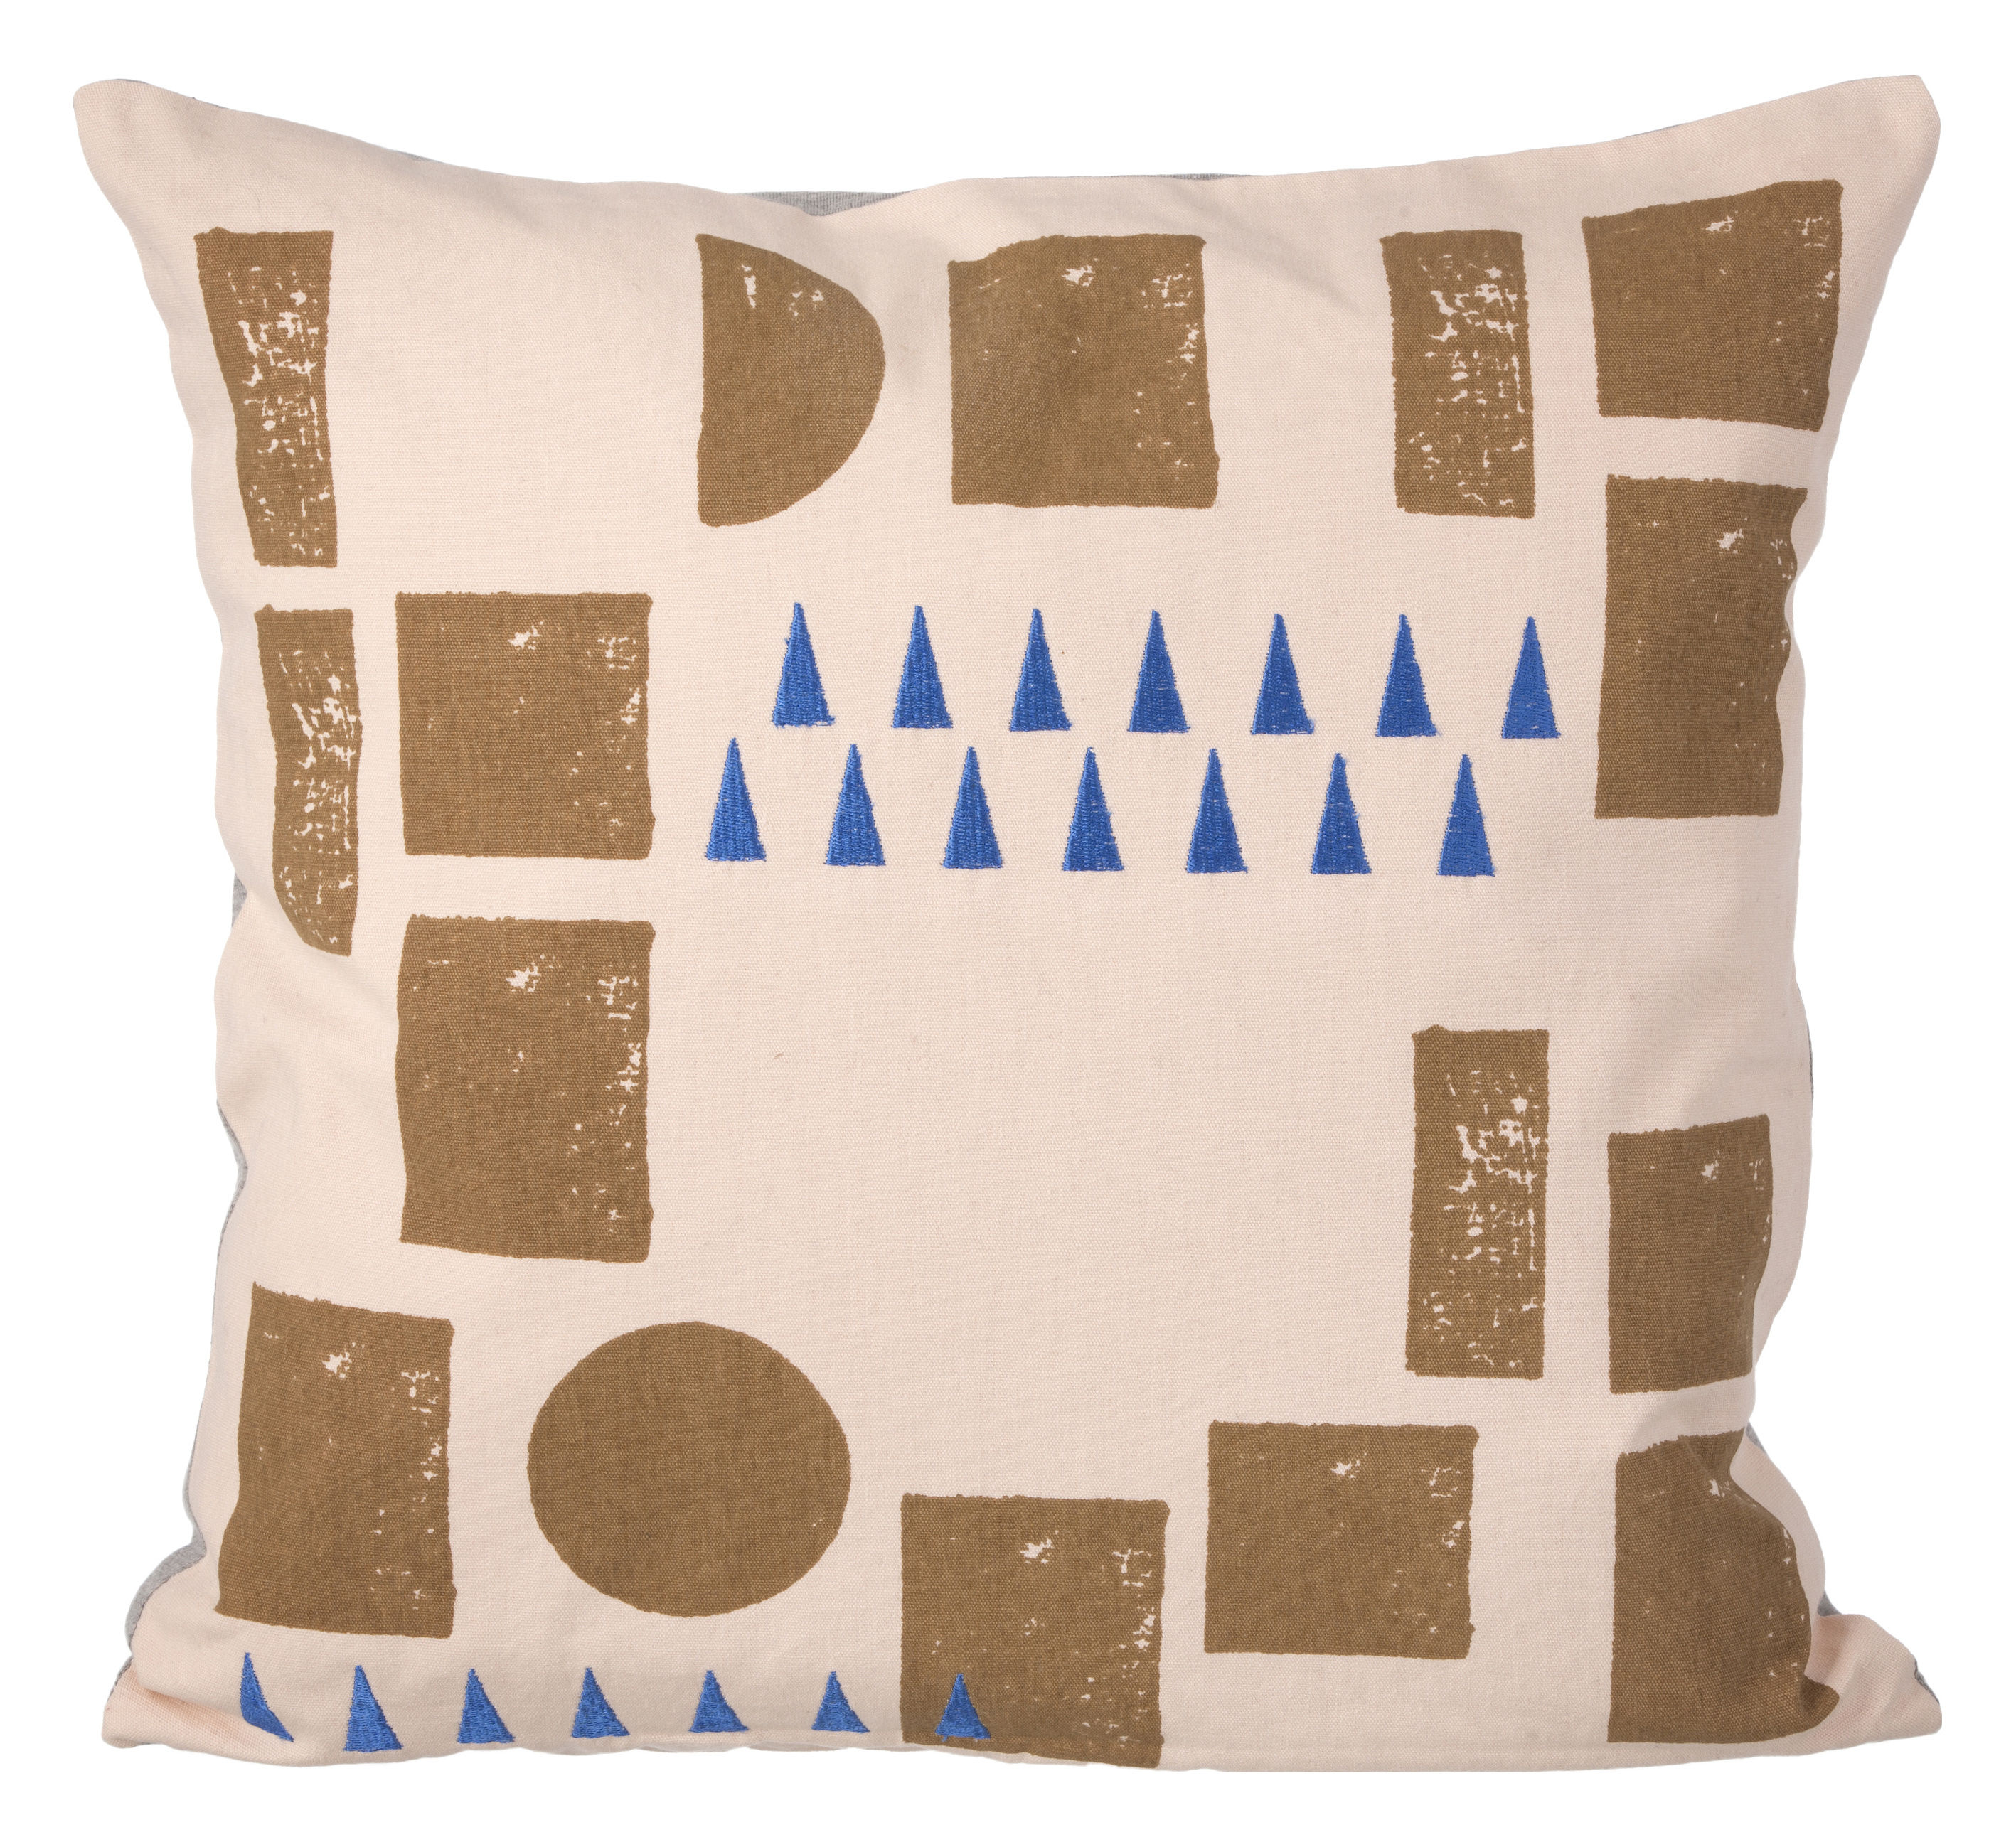 Decoration - Cushions & Poufs - Block Cushion - 40 x 40 cm by Ferm Living - Pink & blue -  Duvet,  Plumes, Fabric